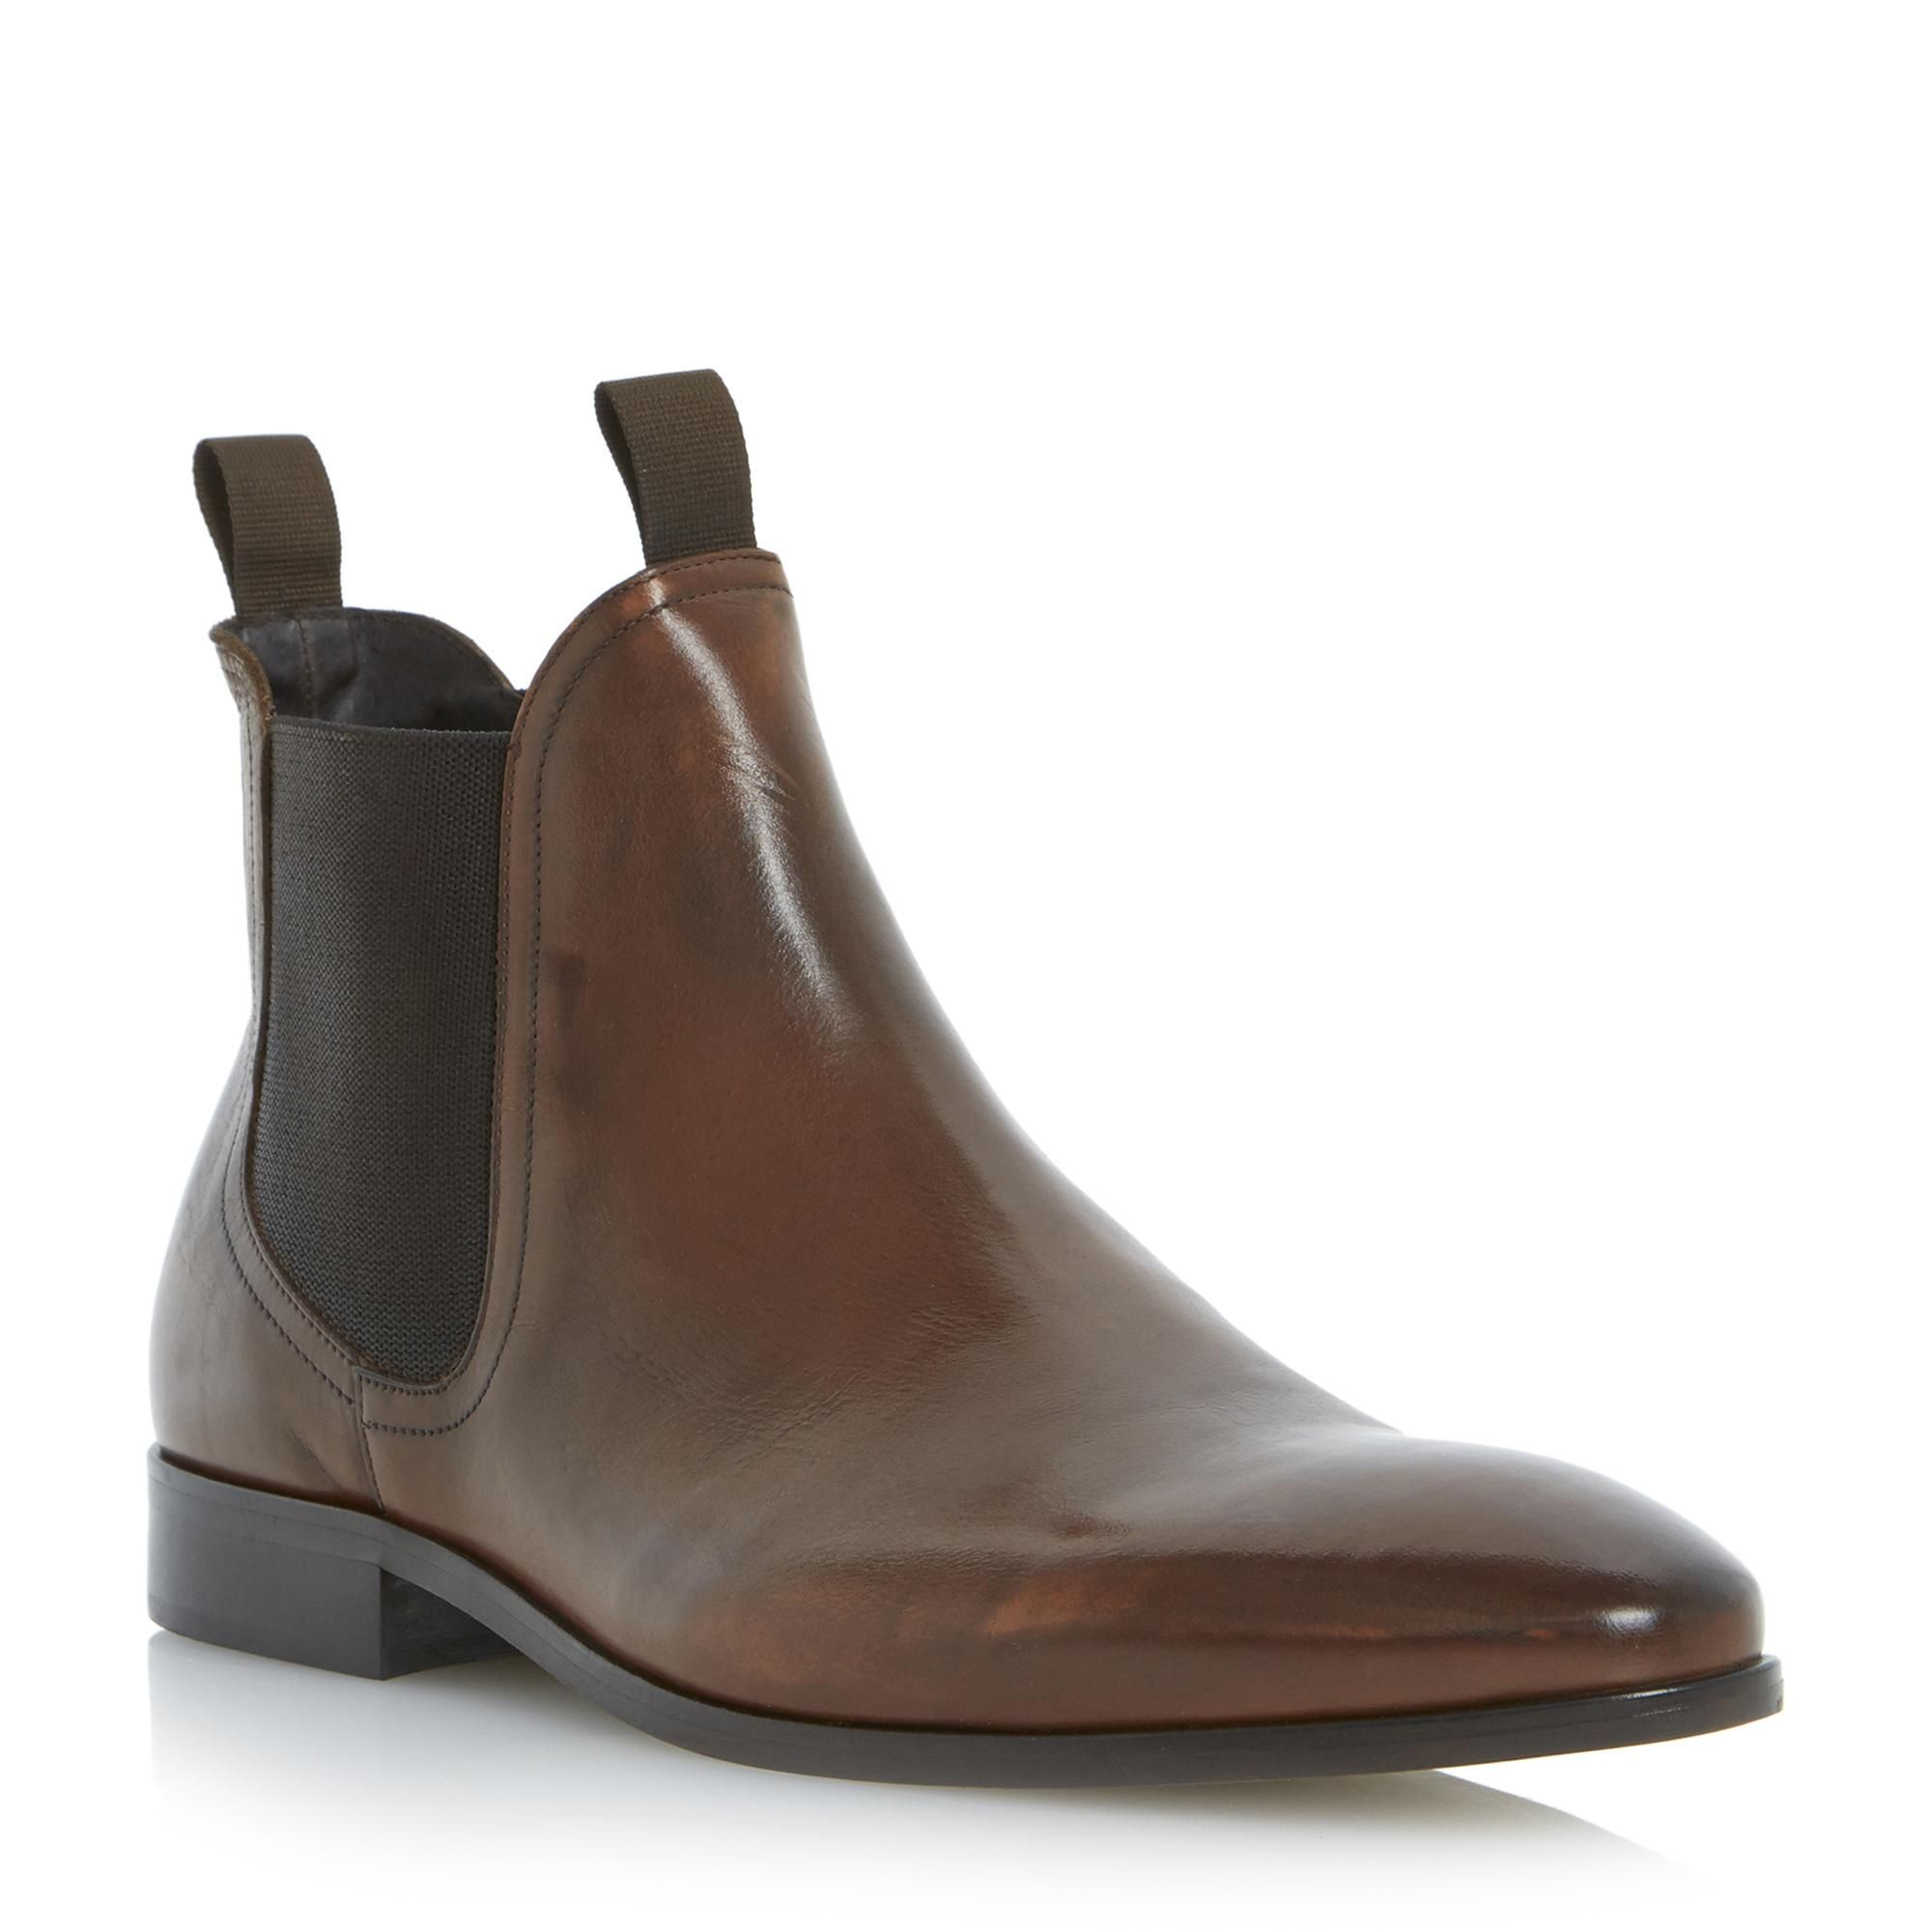 DUNE MENS MUGGLES  Double Tab Leather Chelsea Boot  tan | Dune Shoes  Online